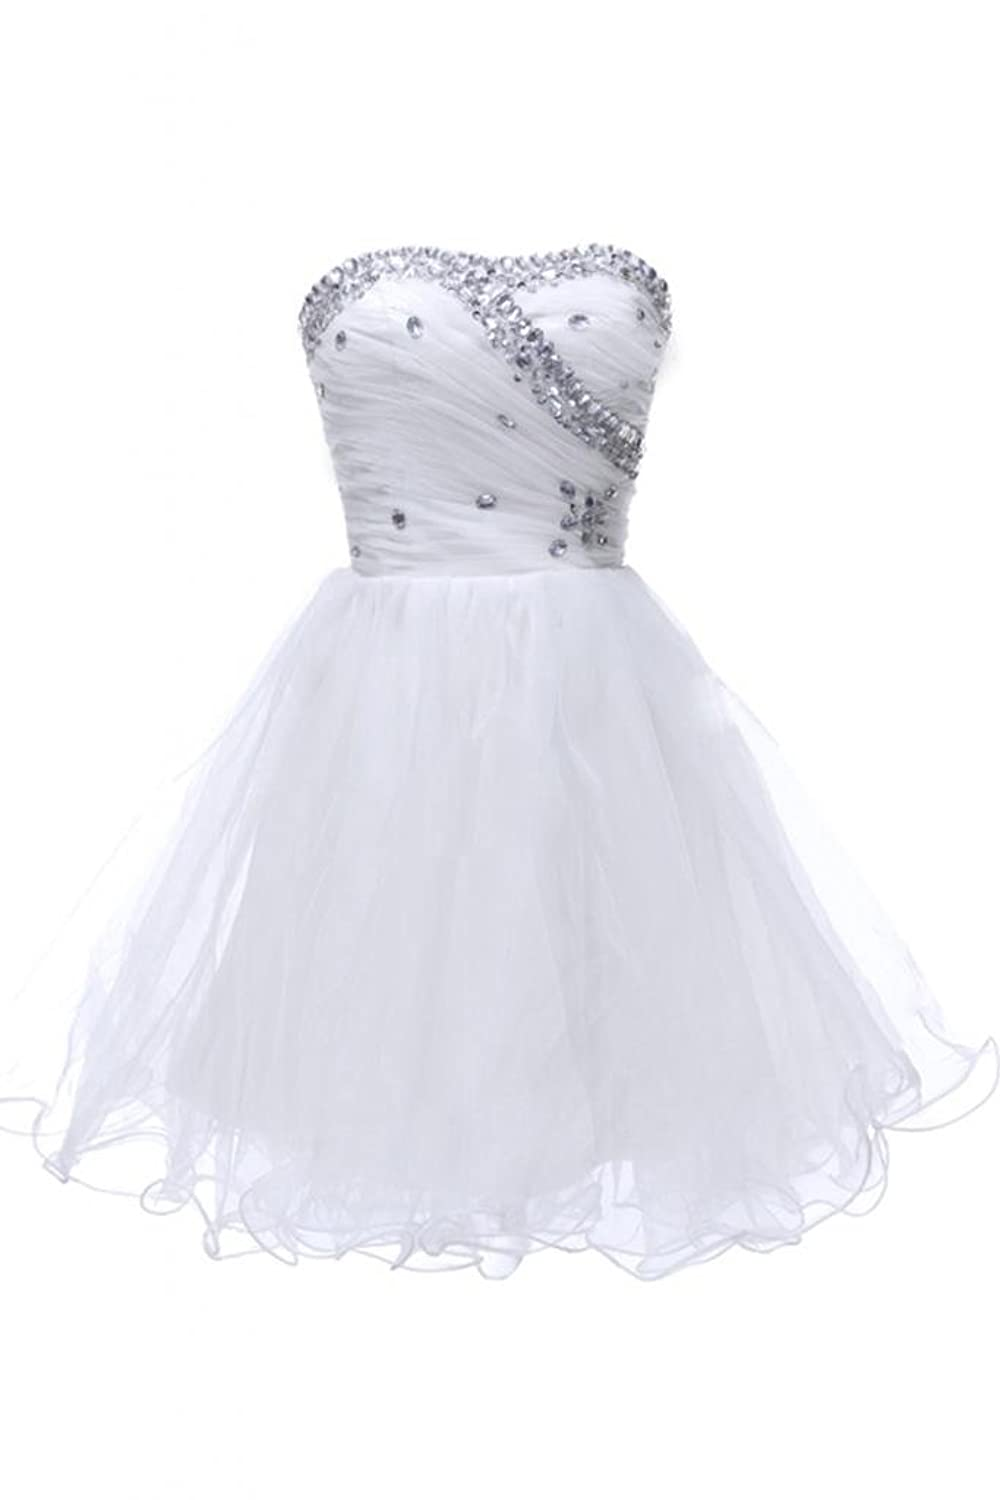 Sunvary Lovely A Line Cocktail Party Dresses Sweetheart Mini Organza Skirts for Women